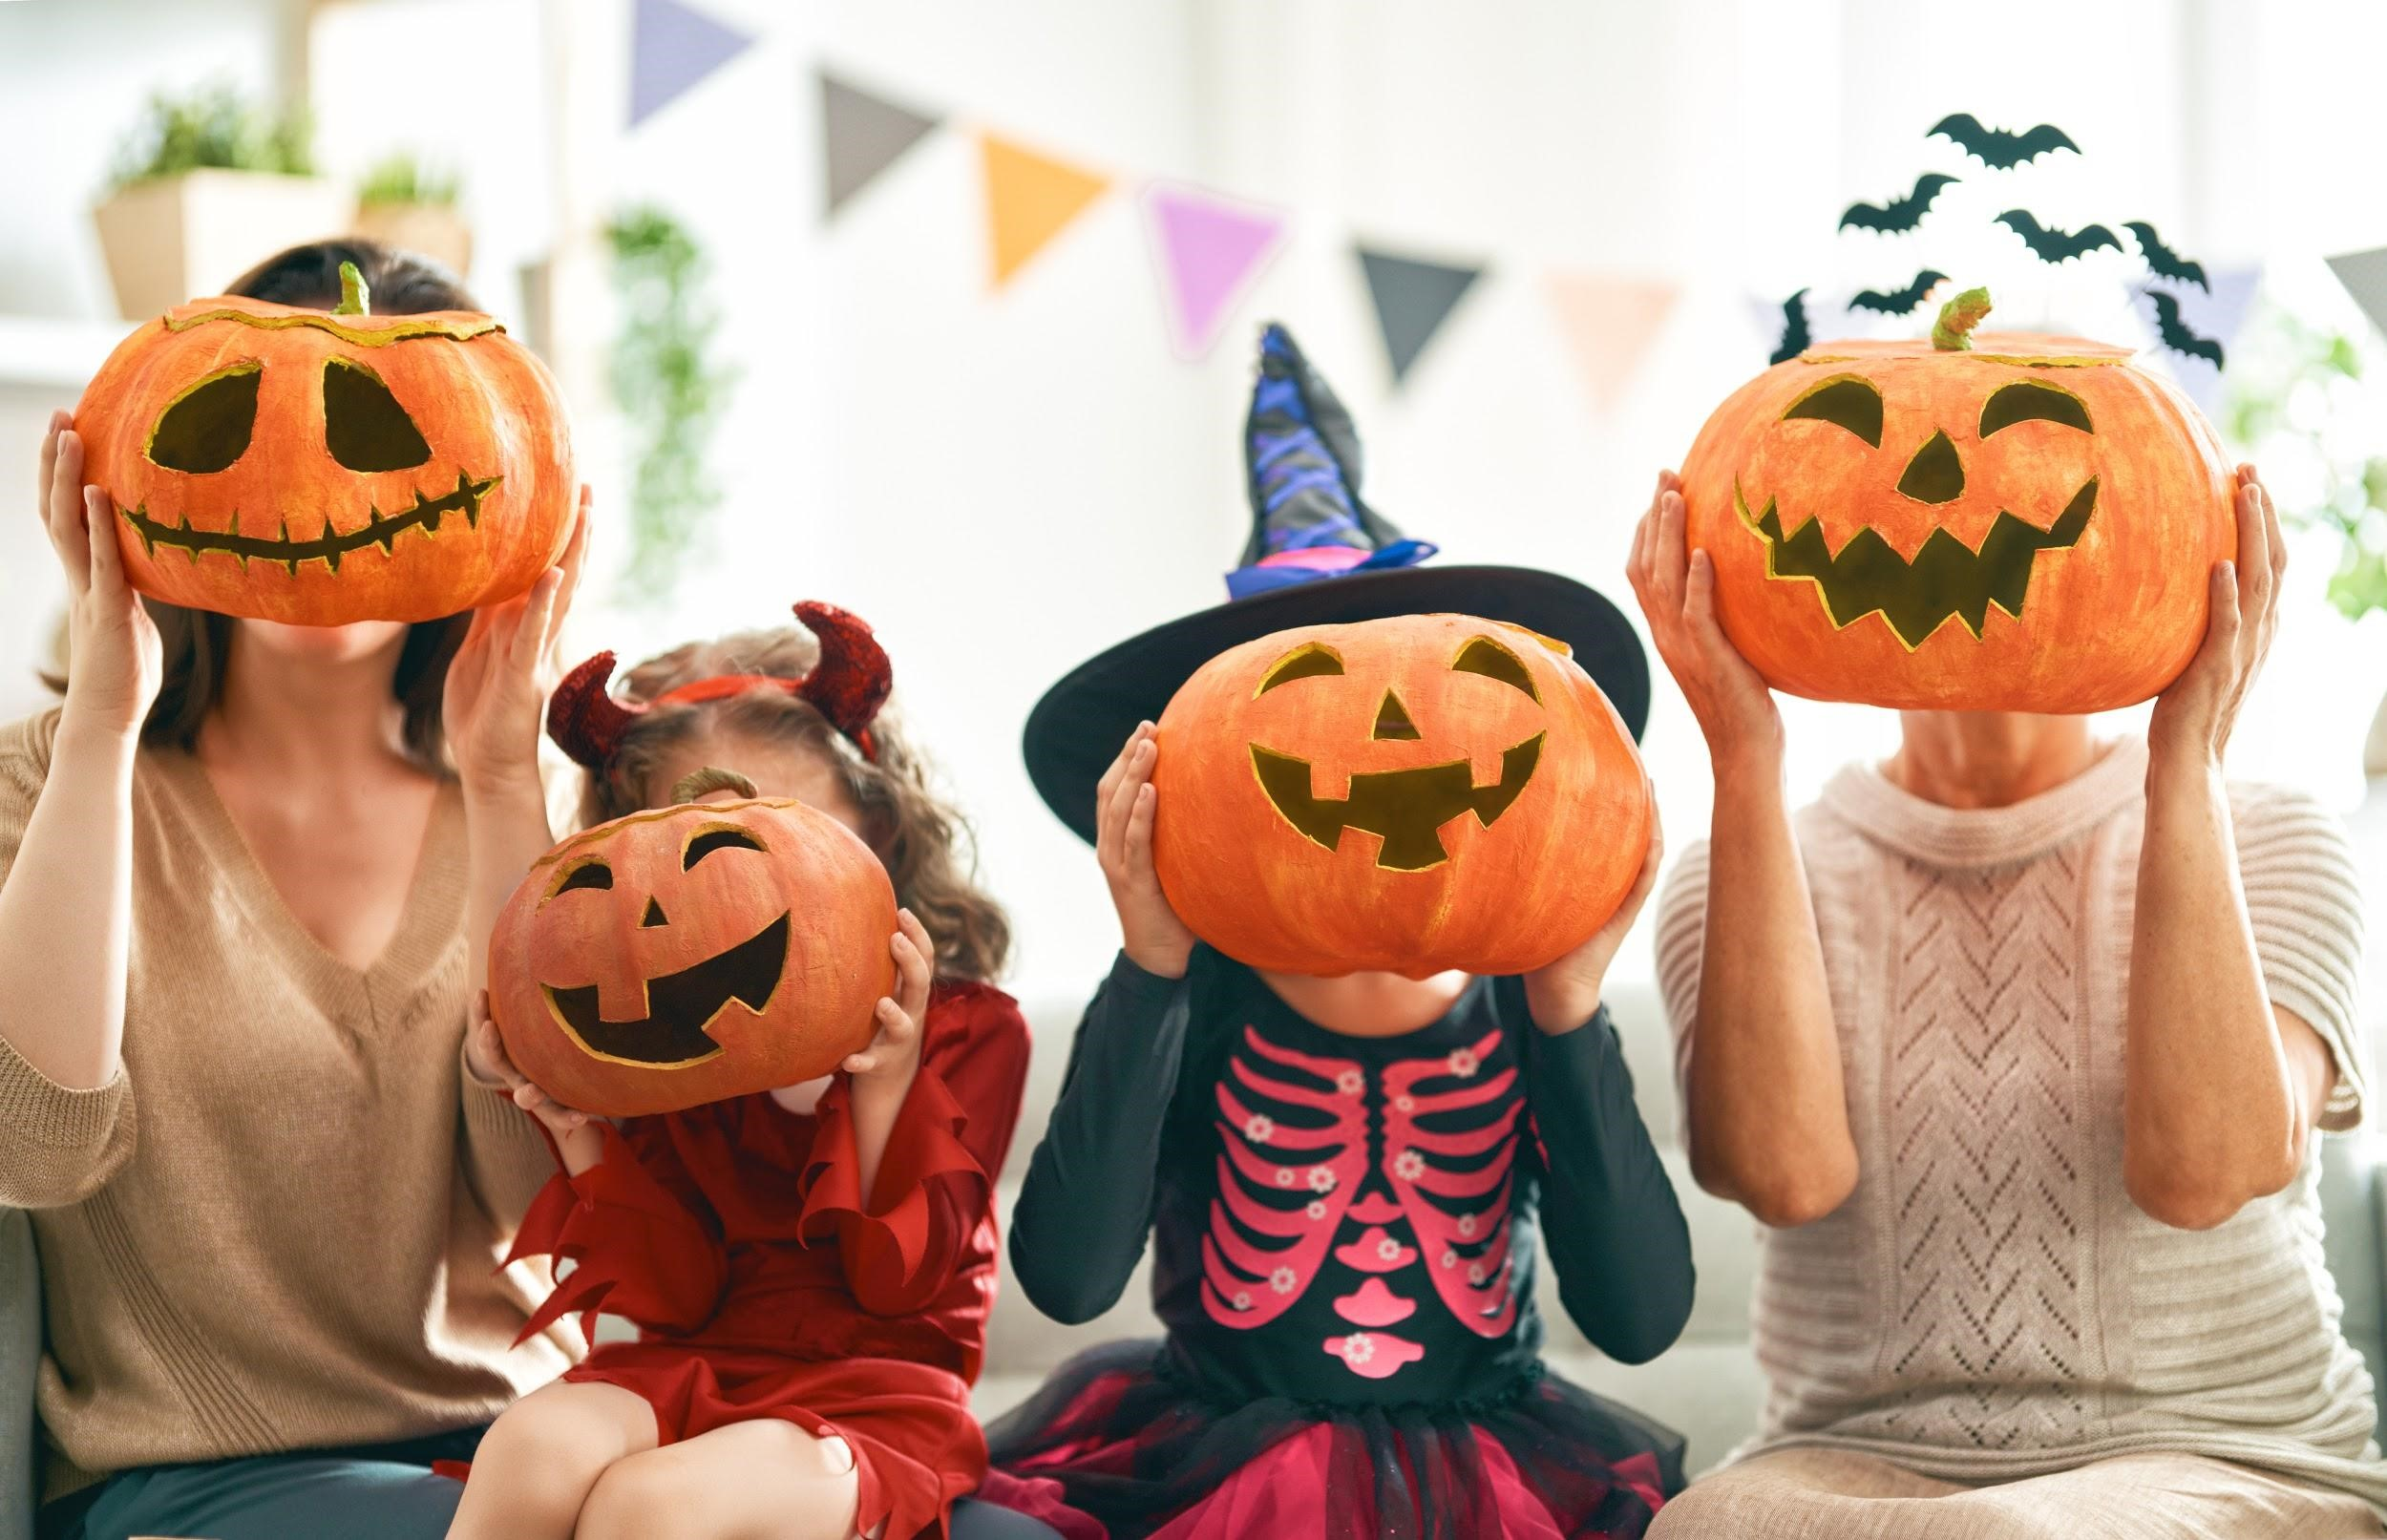 Don't Spook Your Customers With Poor CSAT! How to Utilize Omnichannel QM to Make Sure You Never Scare off Customers Again